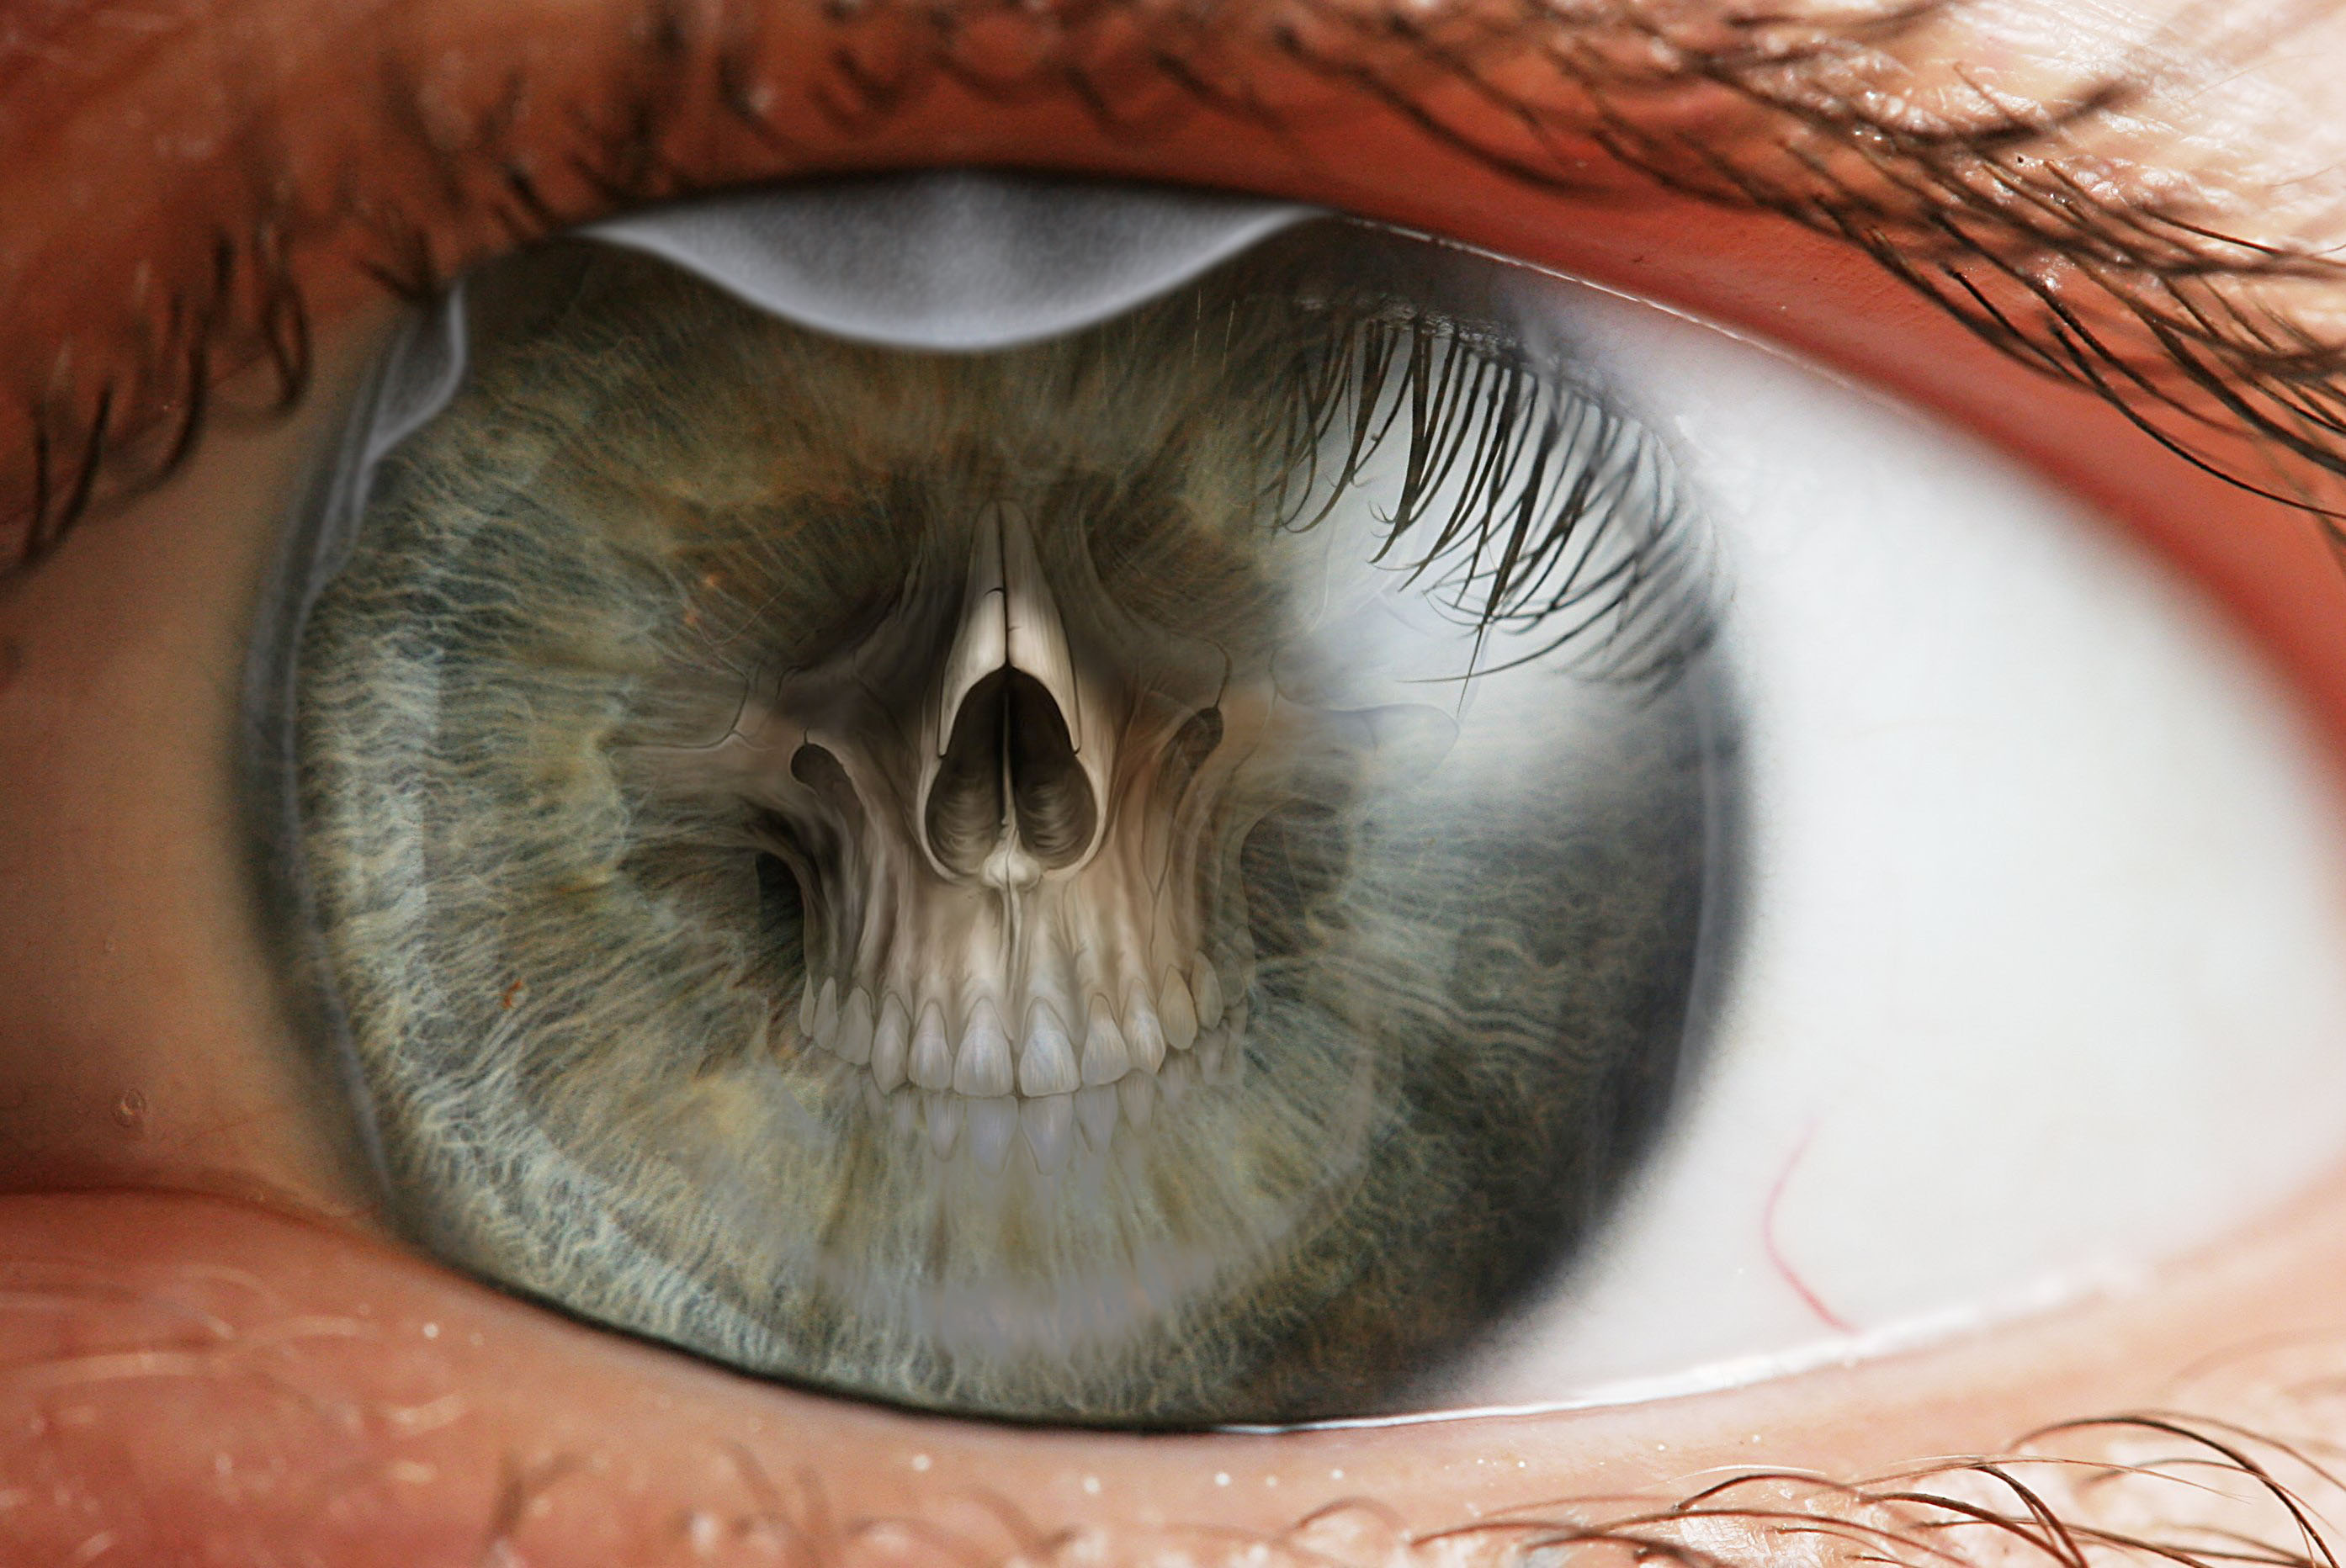 What do some of you mean when you say that someone near death, eyes change?